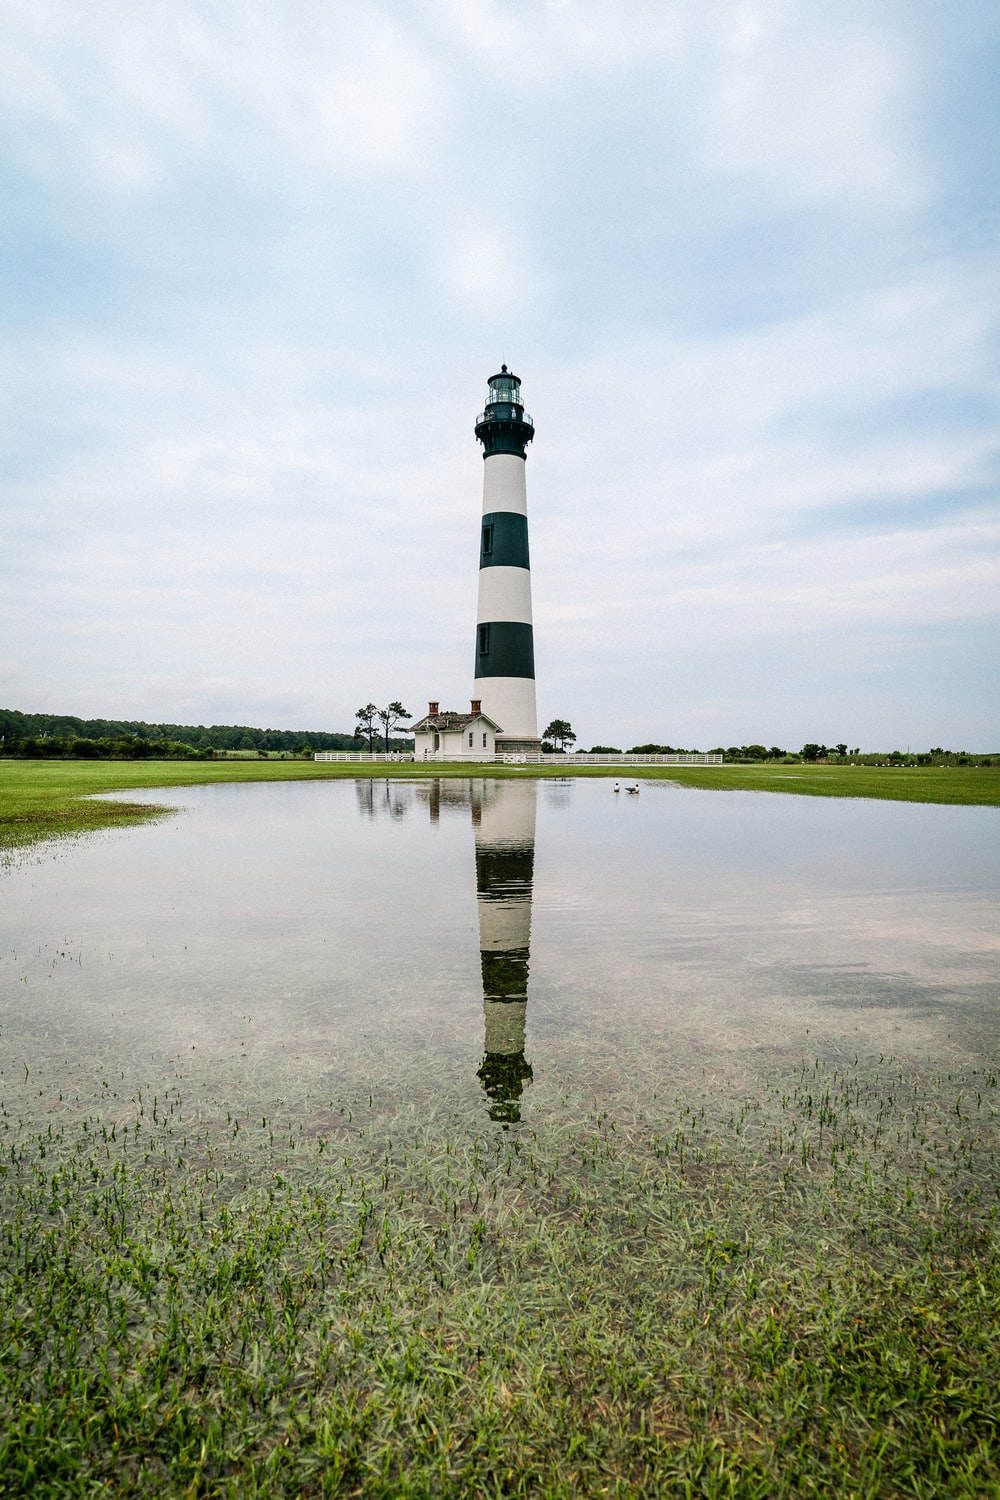 black and white lighthouse near green grass field under white clouds during daytime